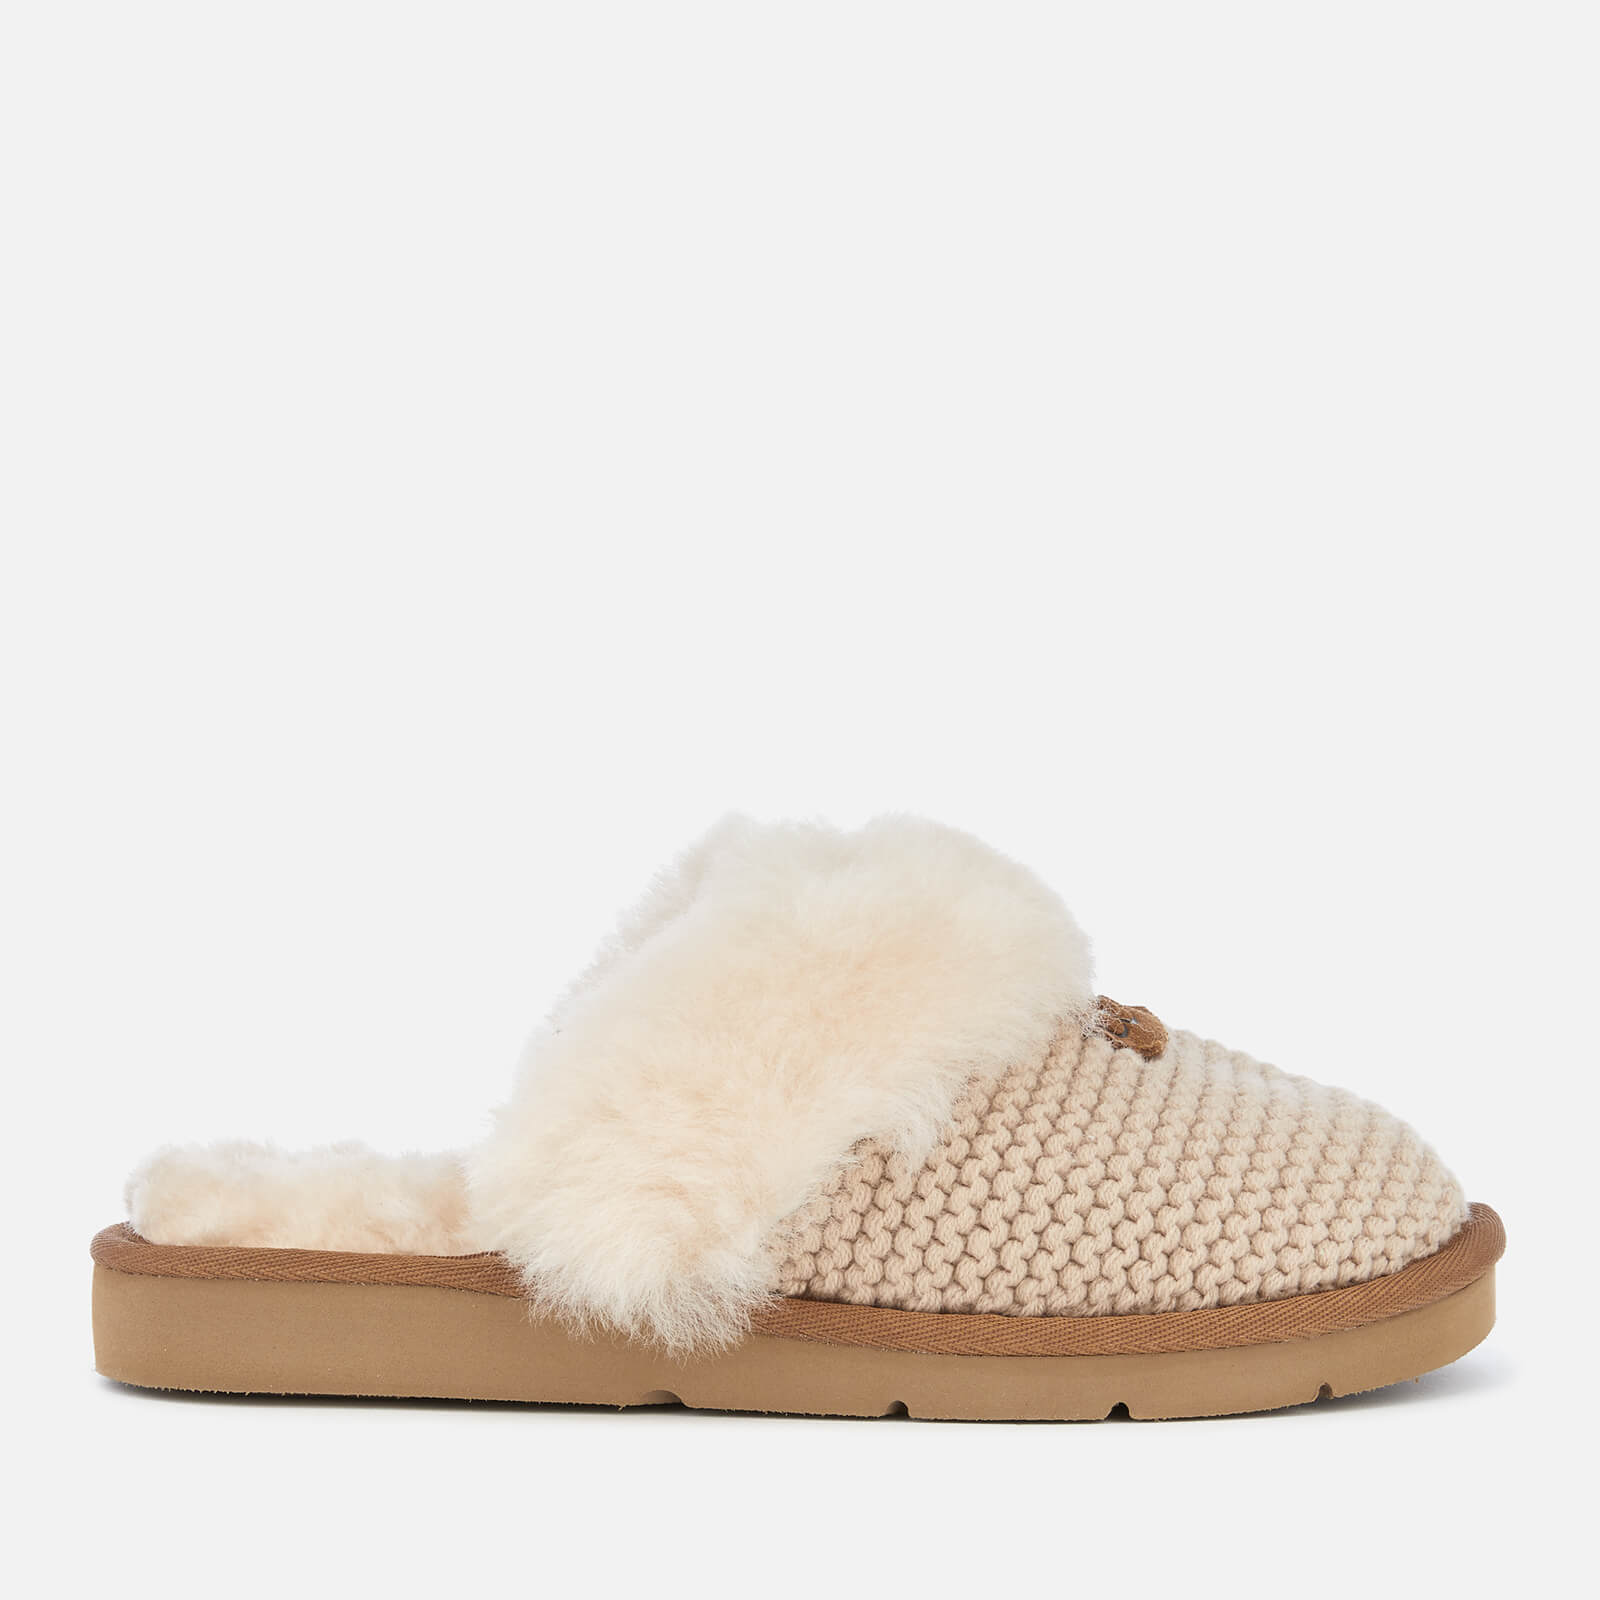 126aff57f79 UGG Women s Cozy Knit Slippers - Cream - Free UK Delivery over £50